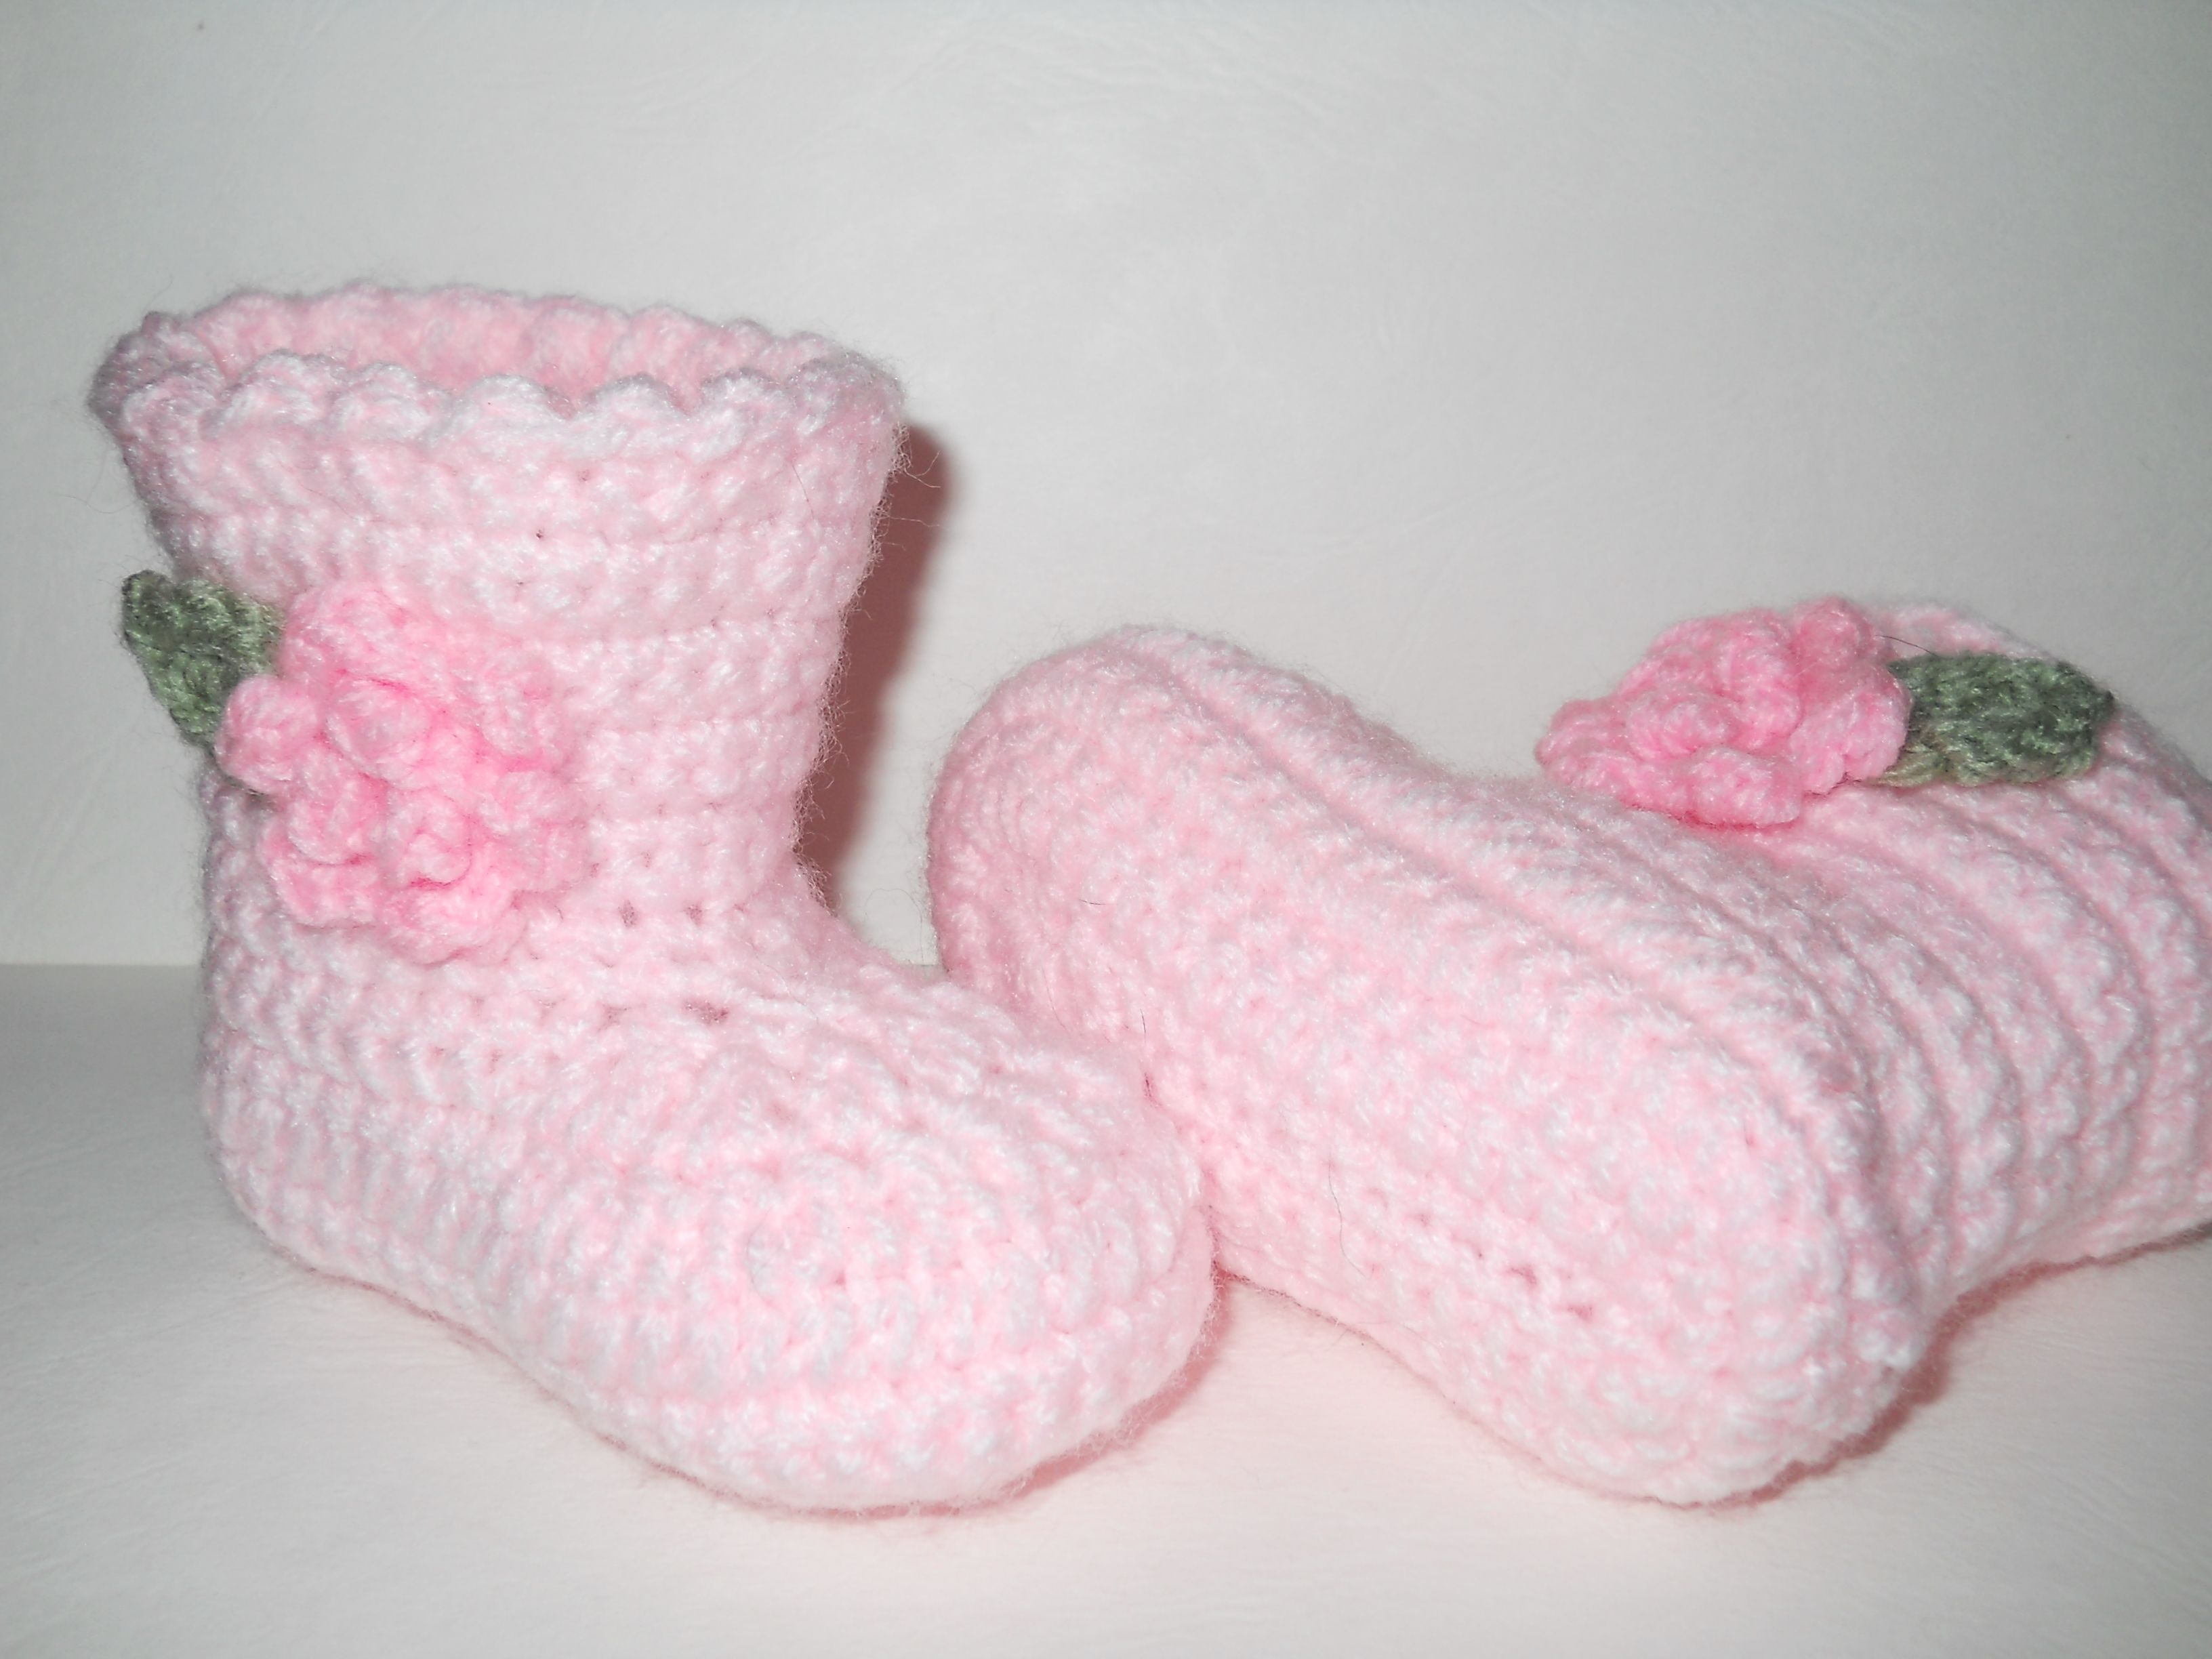 Sugar 'n' Spice boots pattern by Elizabeth Alan The Lovely Crow. Gorgeous girls crochet boots made by me